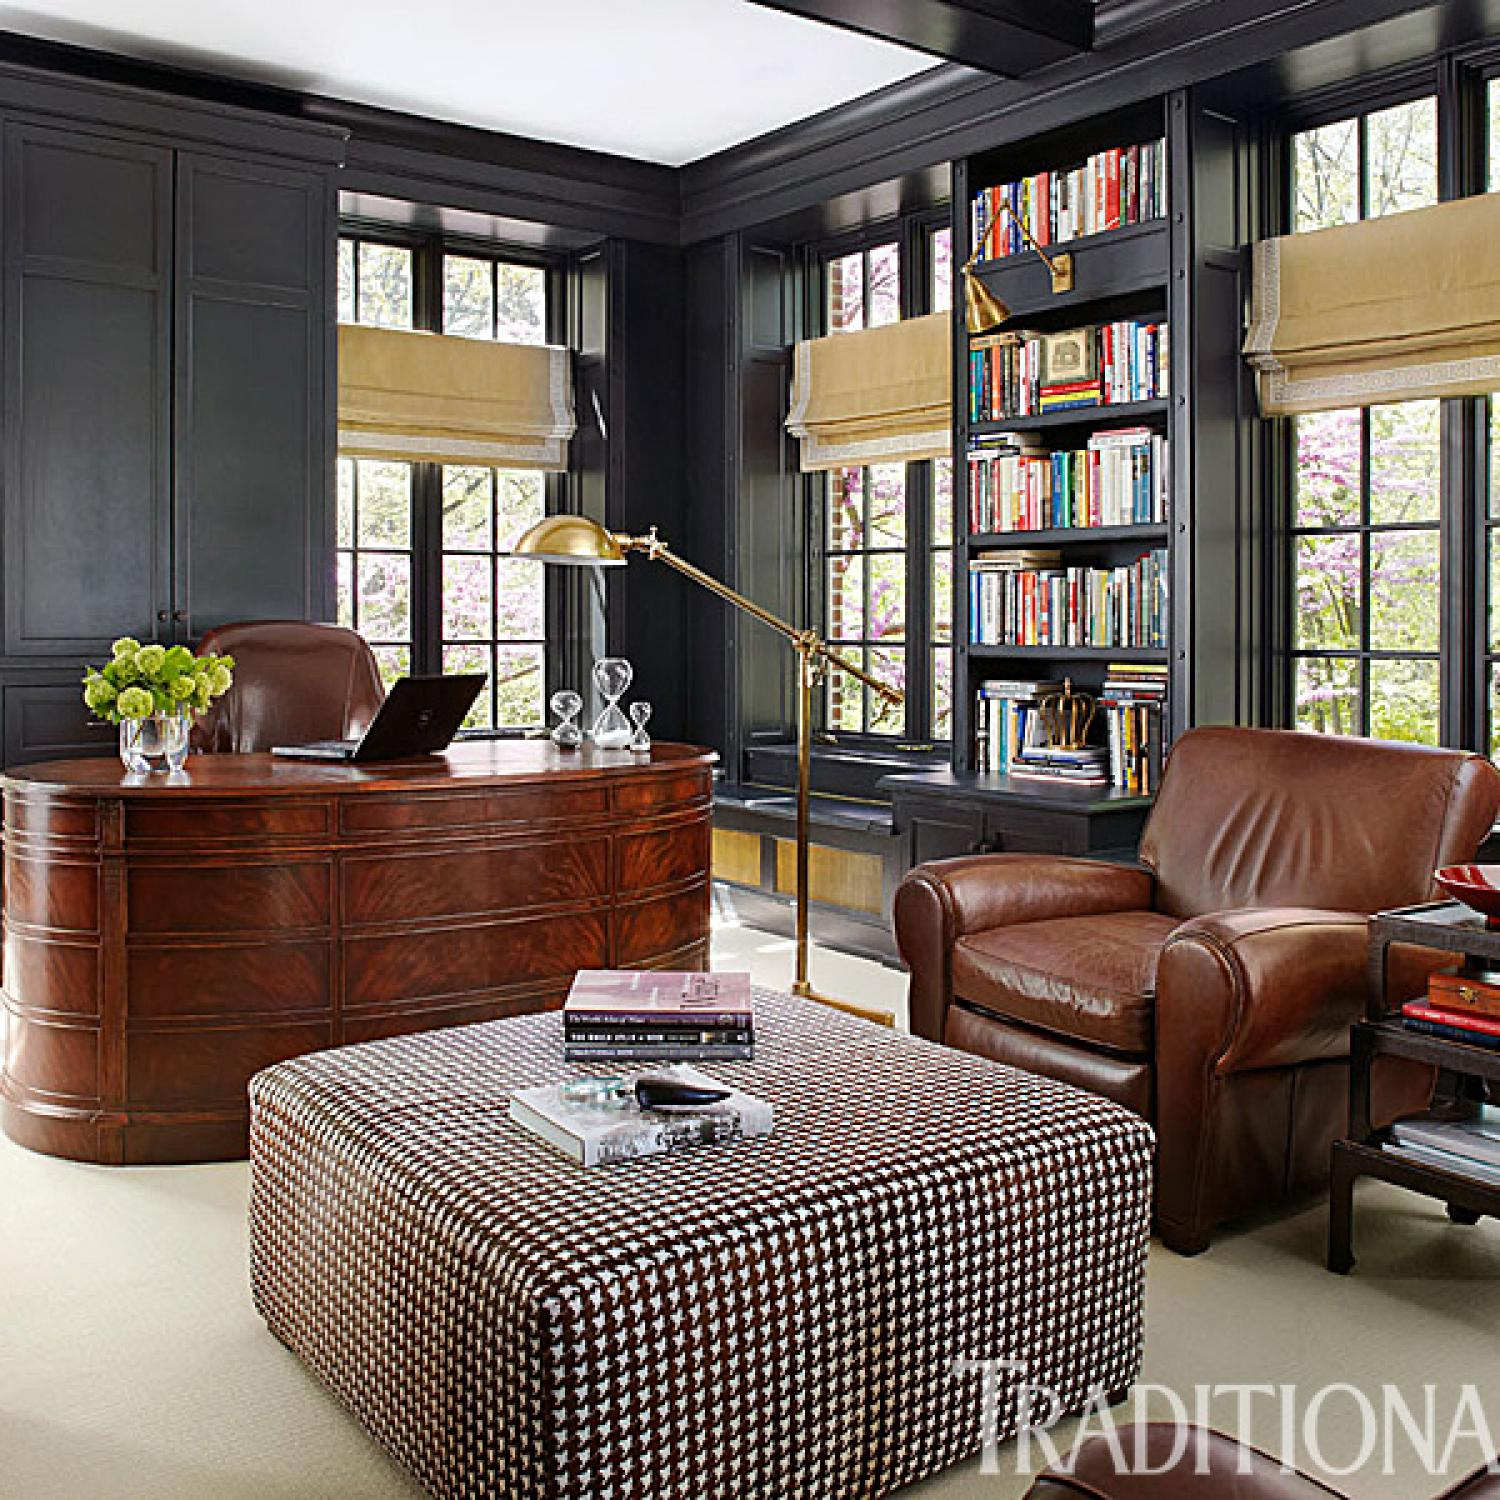 & Handsome Rooms with a Masculine Vibe | Traditional Home